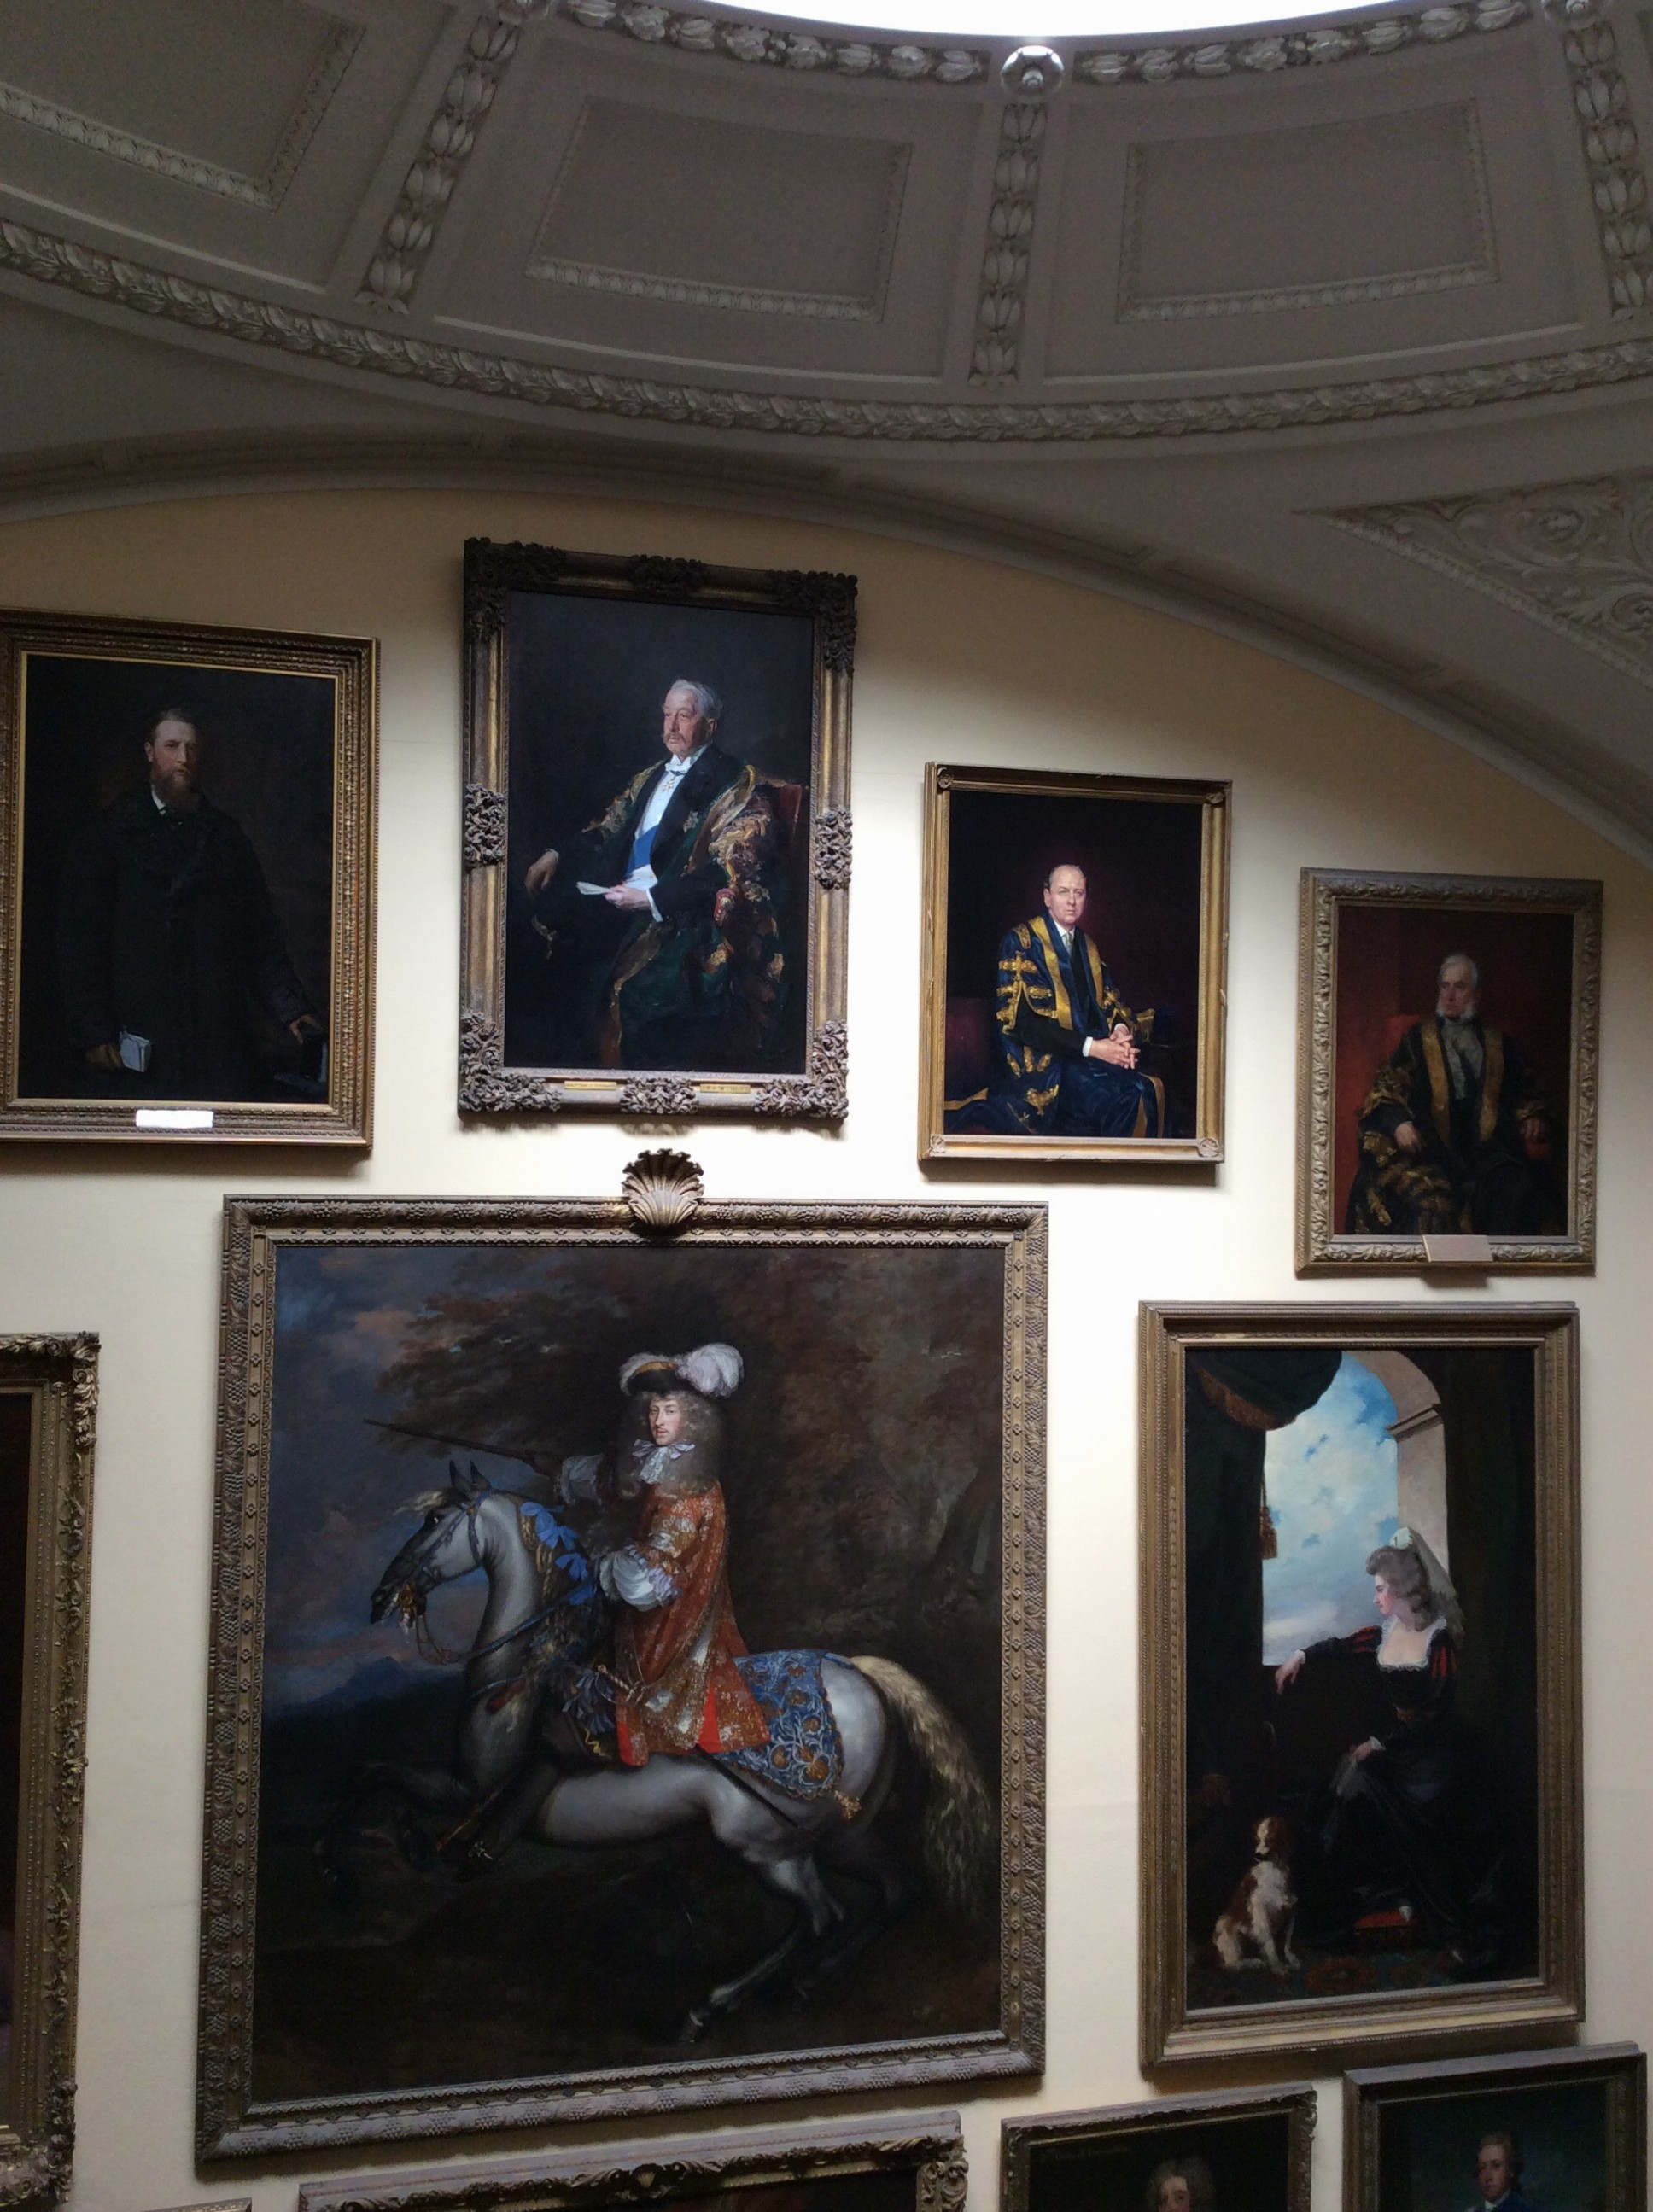 Paintings of the former Dukes and family members who lived in Chatsworth.  To this day, the current Duke owns most of the countryside of Chatsworth. The art throughout the house was remarkable, paintings by people like Singer Sargent and Gainsborough.